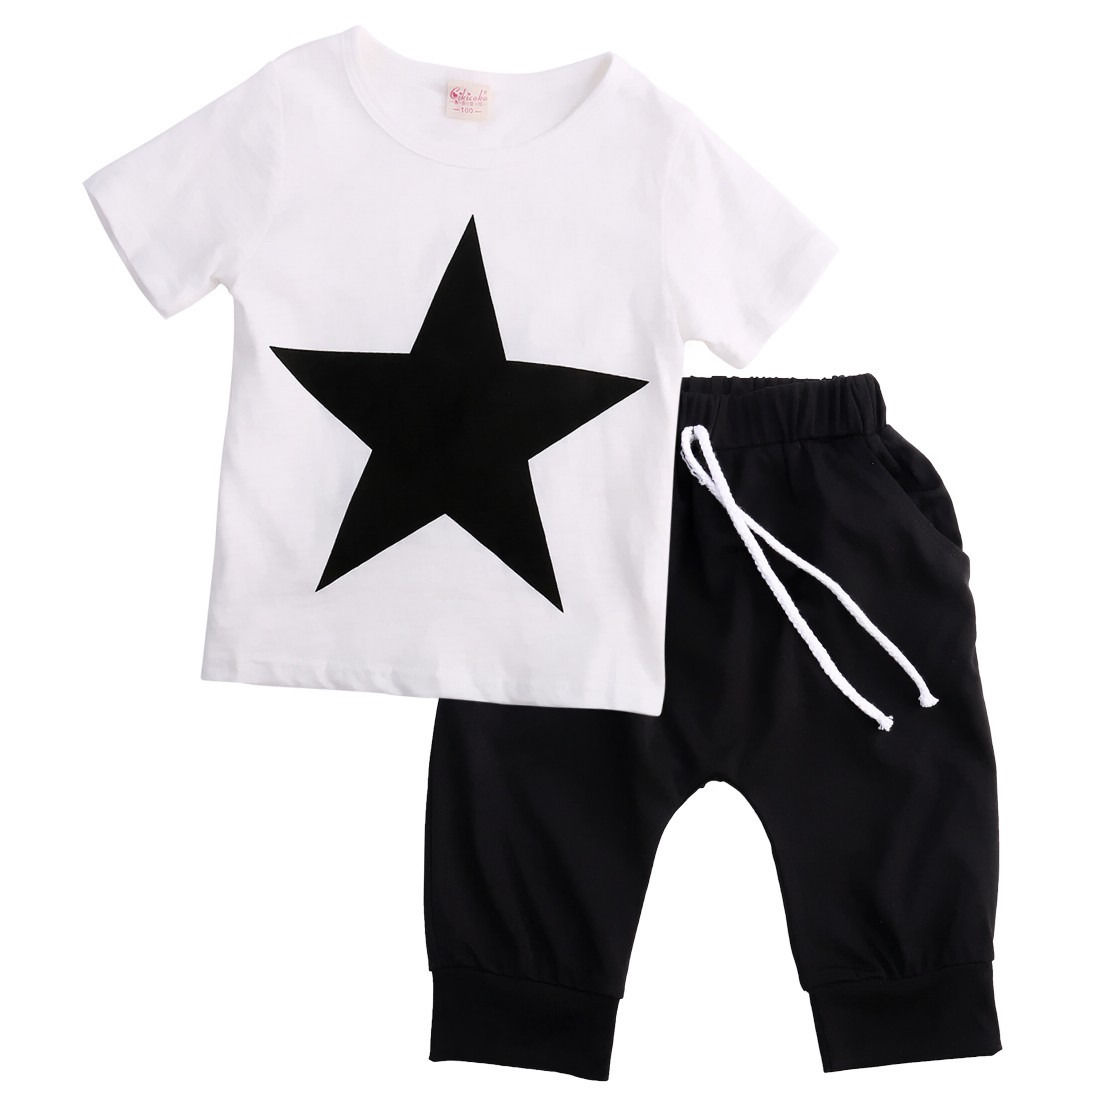 Clode for 2-7 Years Old Boys Summer Children Clothing Toddler Baby Boy Long Sleeve Print T-Shirt Tops+Pants Outfits Clothes